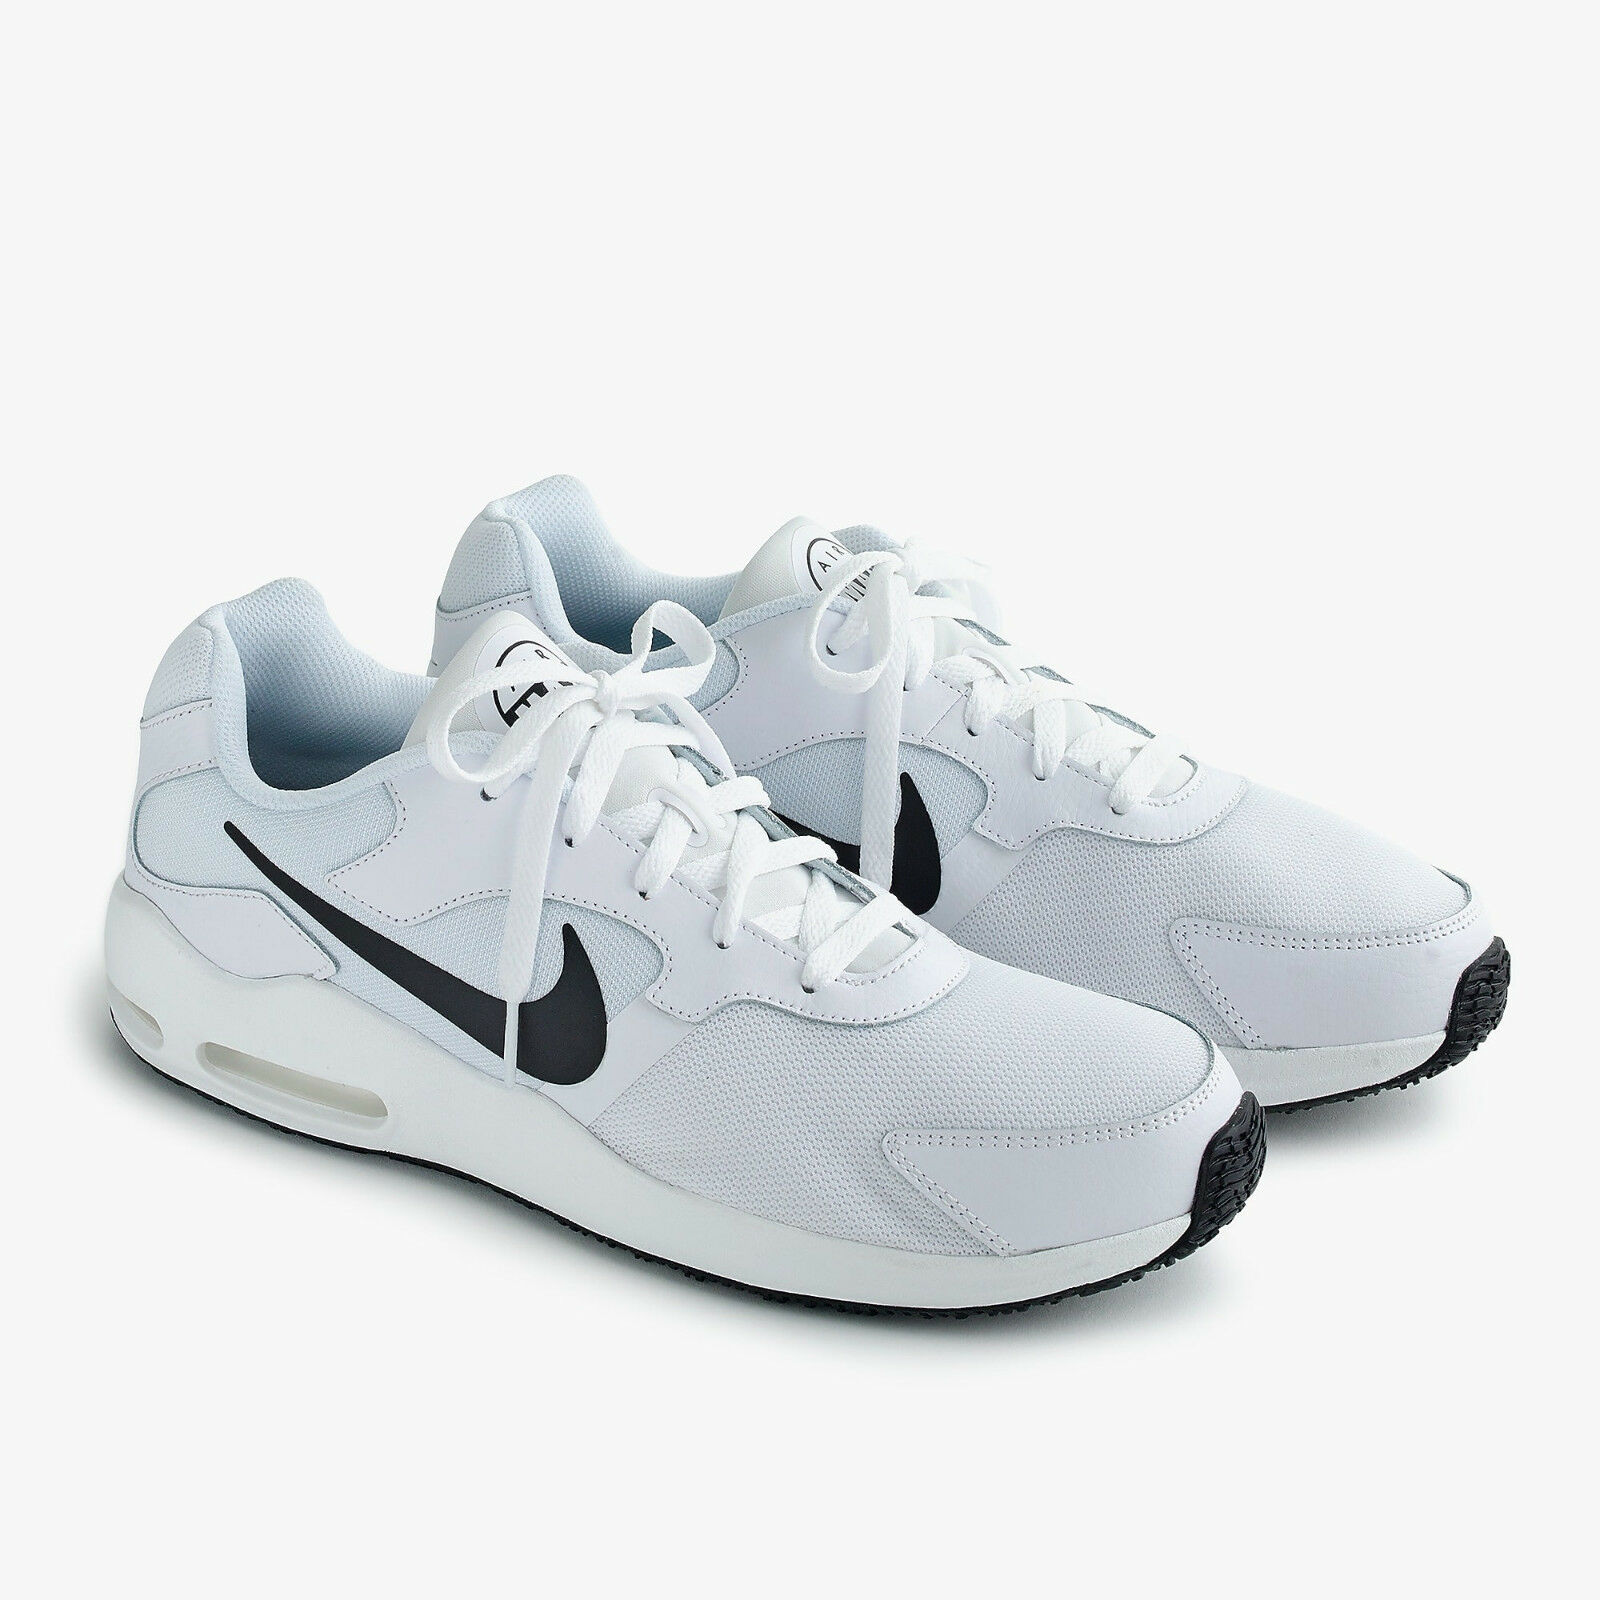 new arrival c2f49 5b6ef Nike Air Max Guile for J. J. J. Crew Men s Classic Running shoes White NEW  US 10.0 61feb0